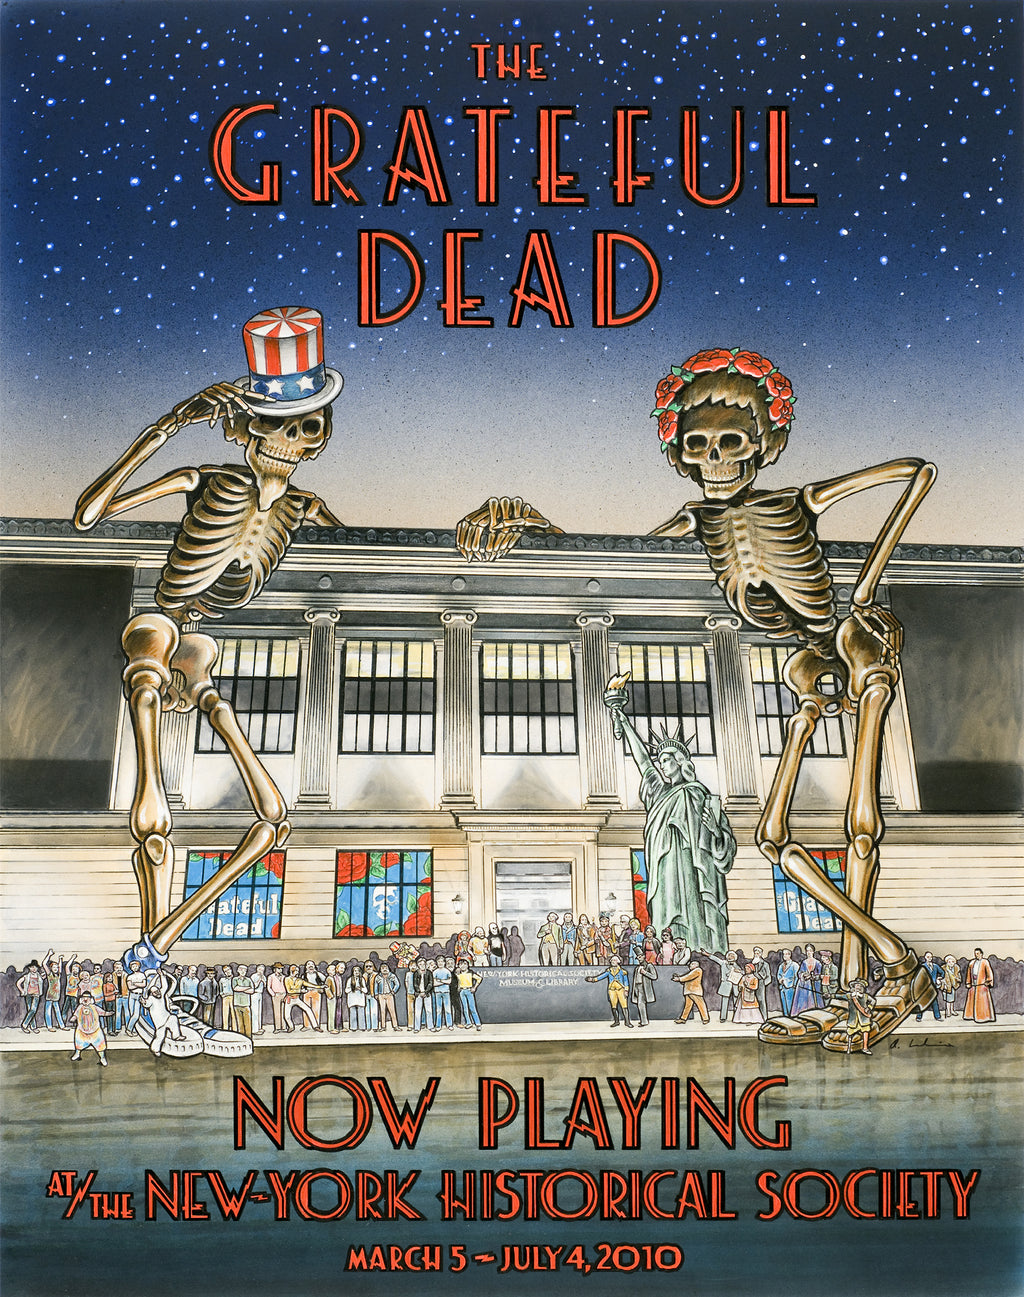 2010-03-05 Grateful Dead at New York Historical Society